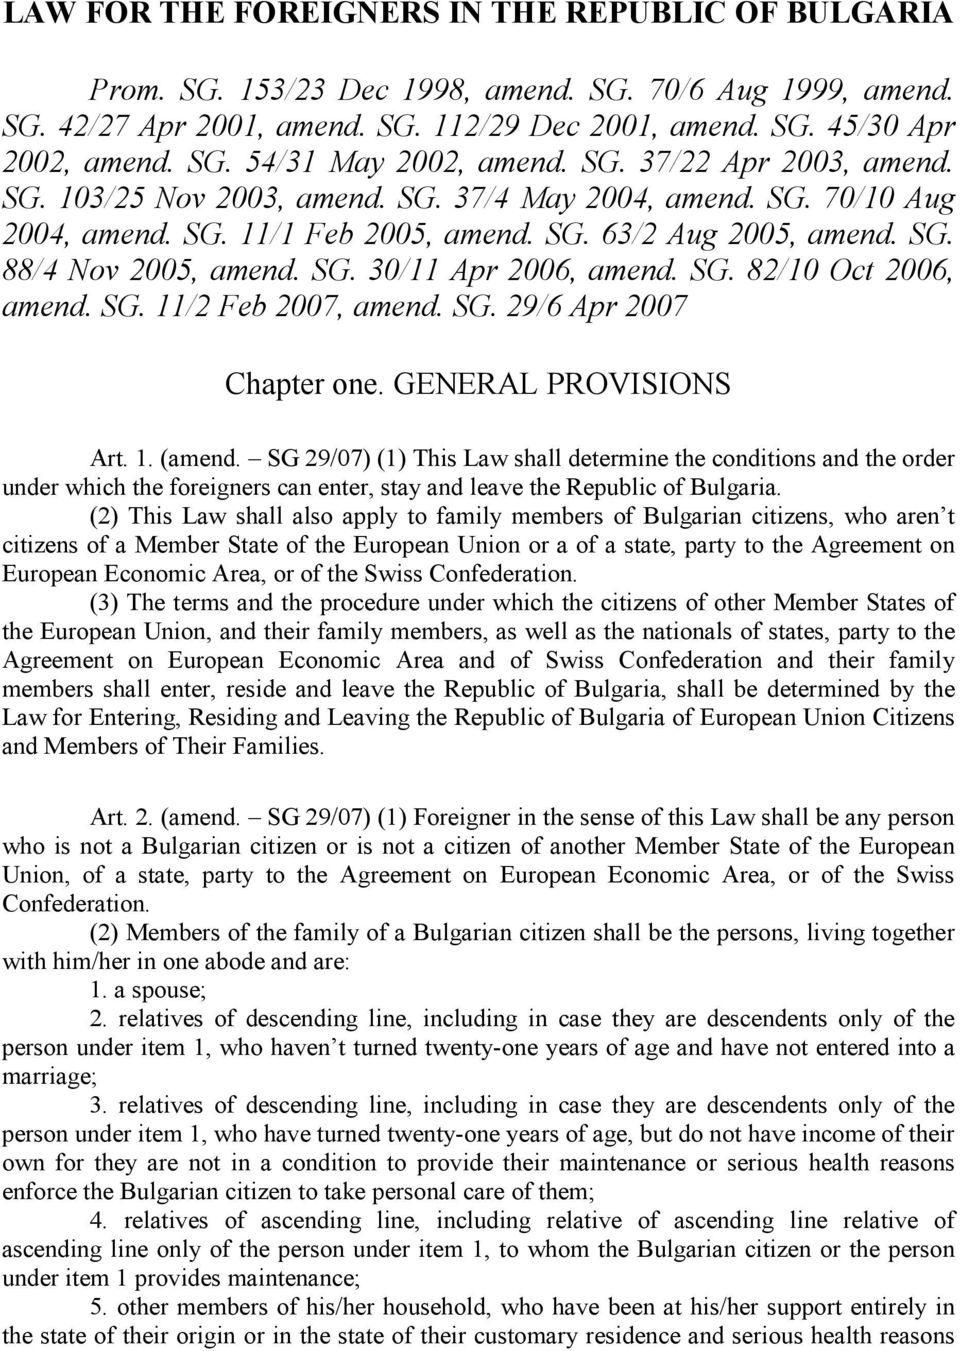 SG. 82/10 Oct 2006, amend. SG. 11/2 Feb 2007, amend. SG. 29/6 Apr 2007 Chapter one. GENERAL PROVISIONS Art. 1. (amend.